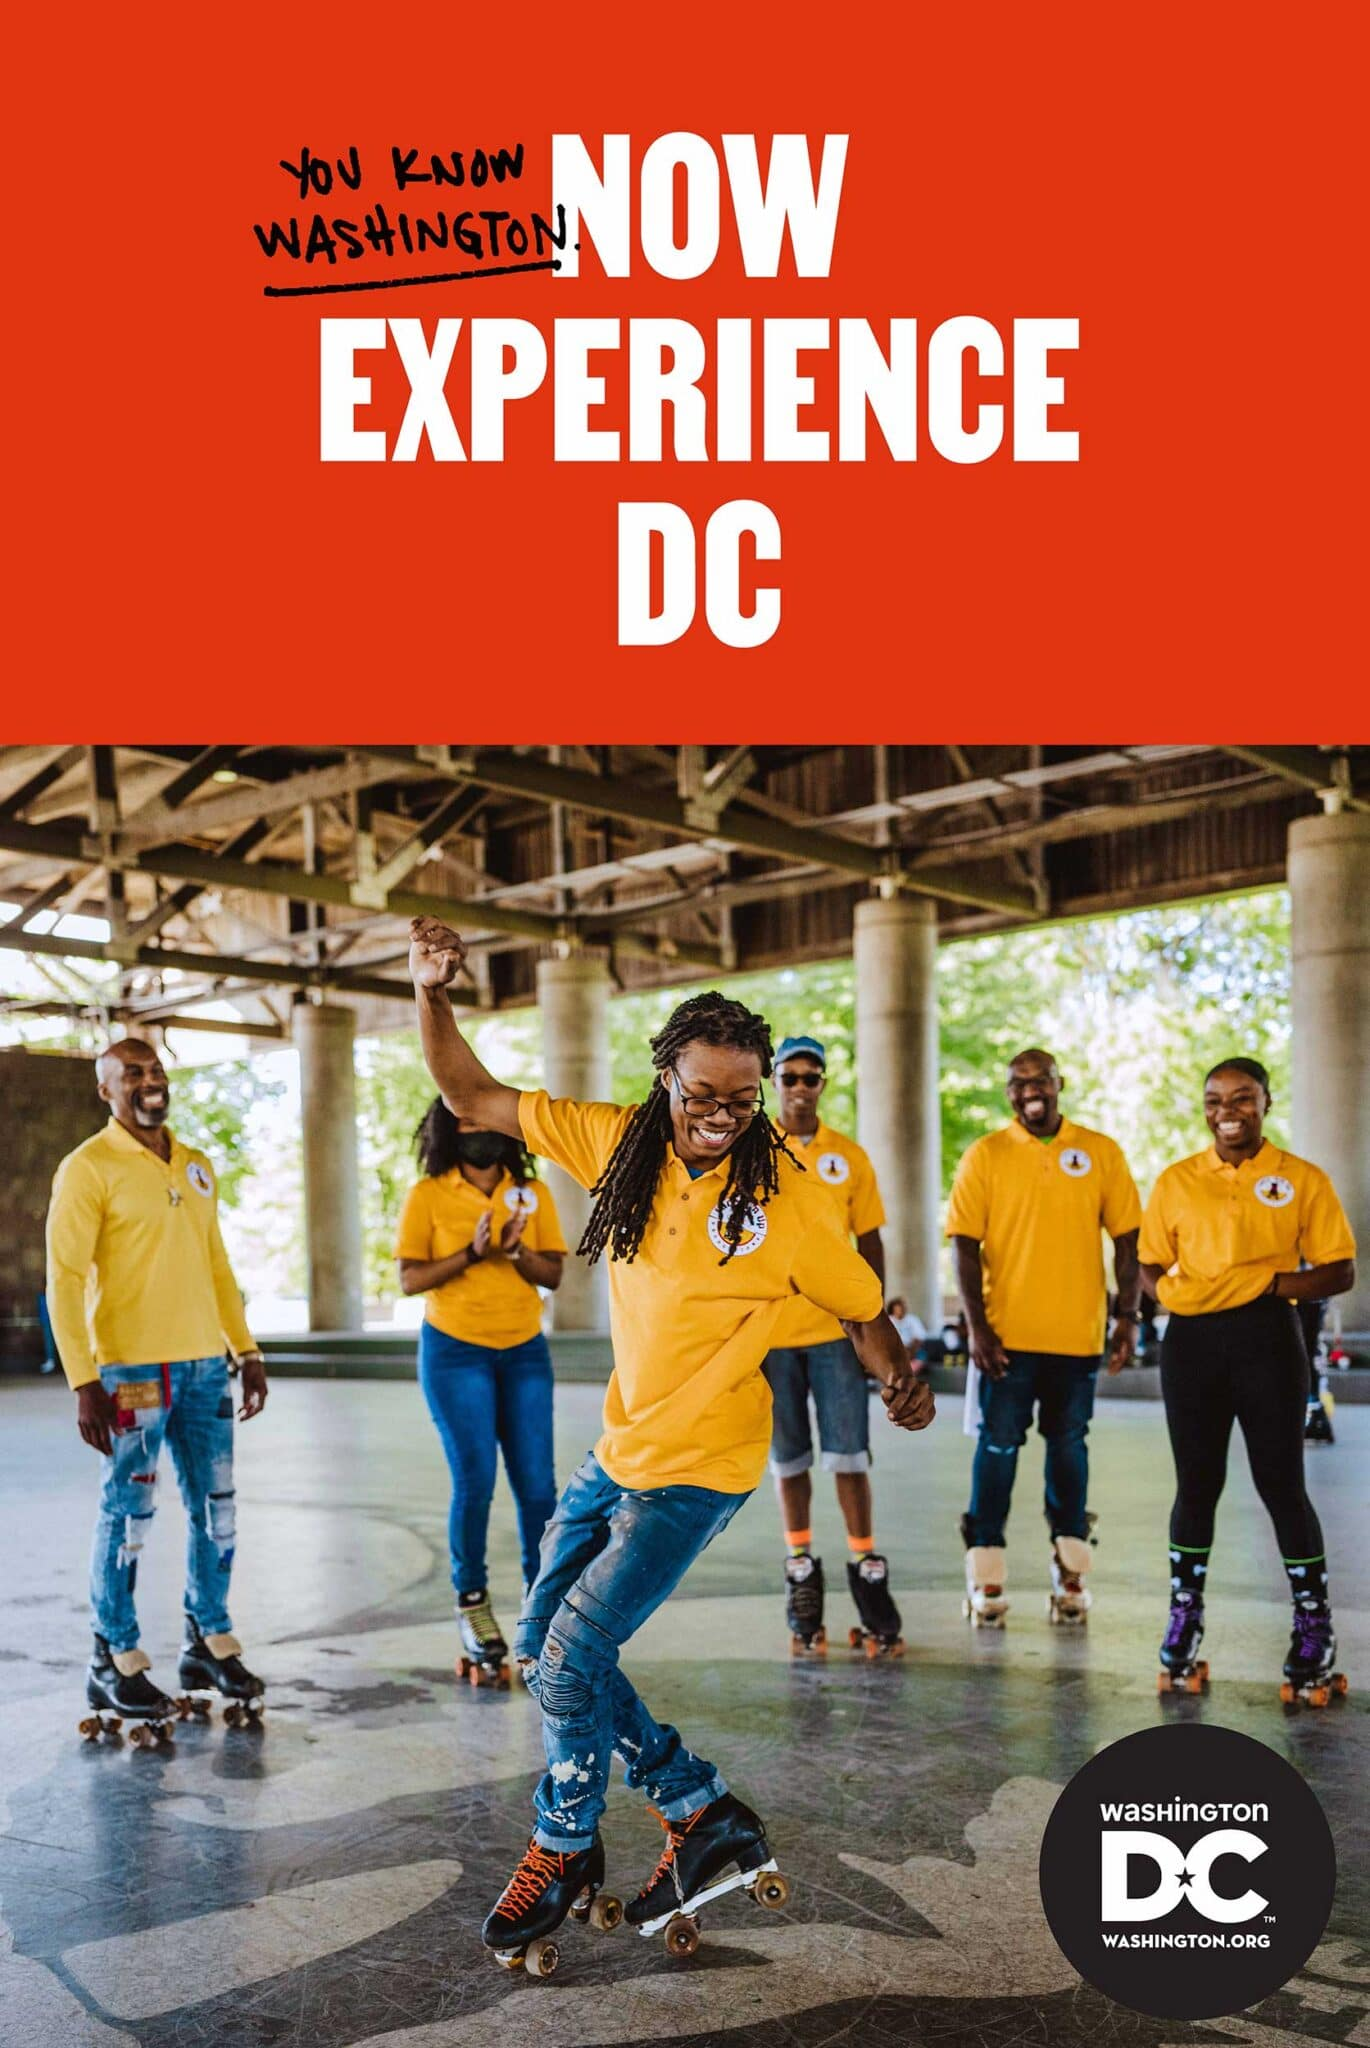 Experience-DC-Ad-Boards_Page_1